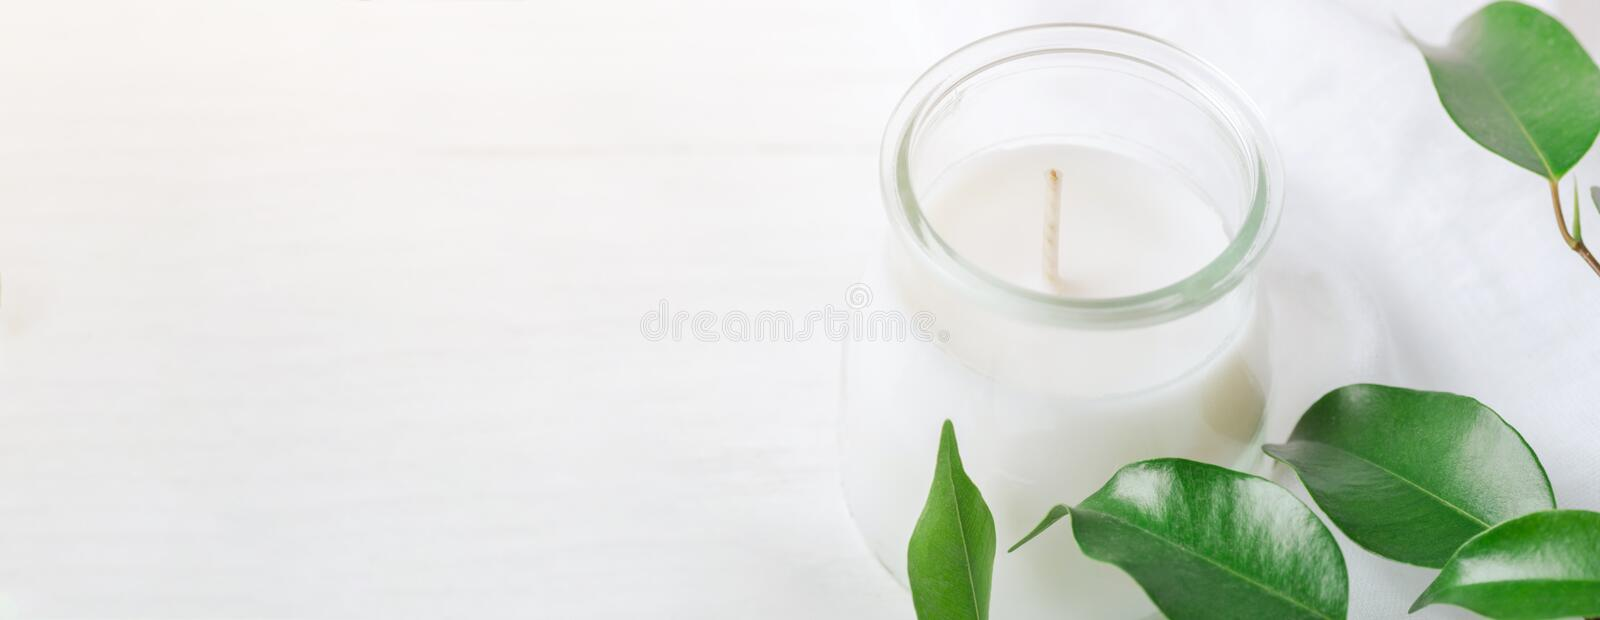 Long Banner for Organic Cosmetics Wellness White Candle in Glass Jar Fresh Tree Branches with Green Leaves on Wood Background. Spa. Body Care Meditation Purity stock photos